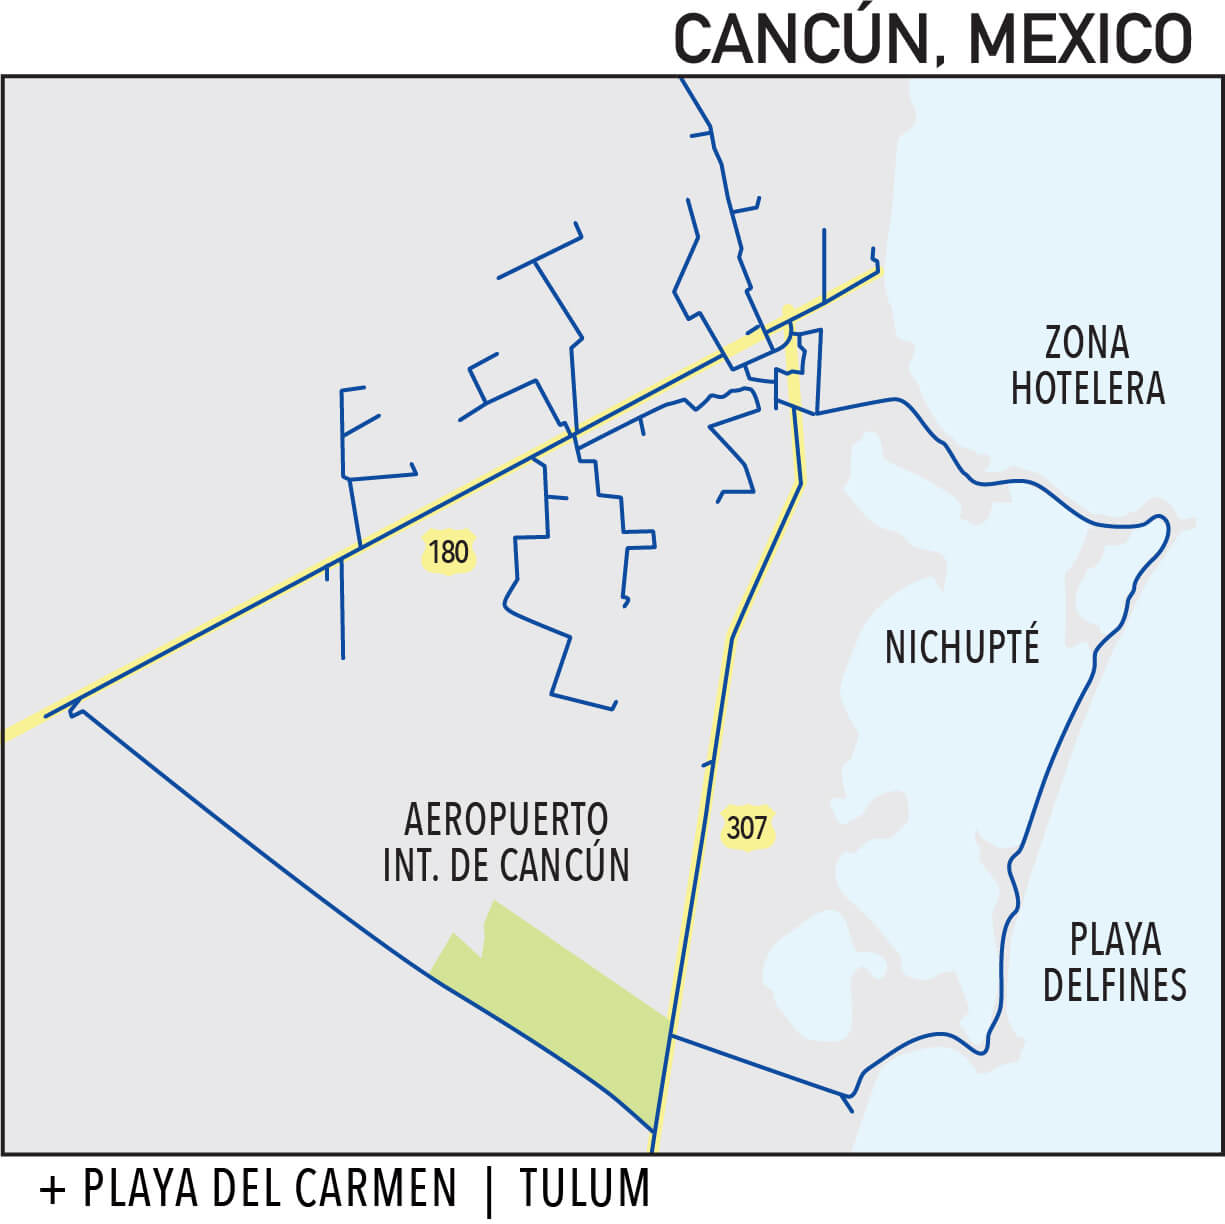 Capillarity Mexico map Ufinet